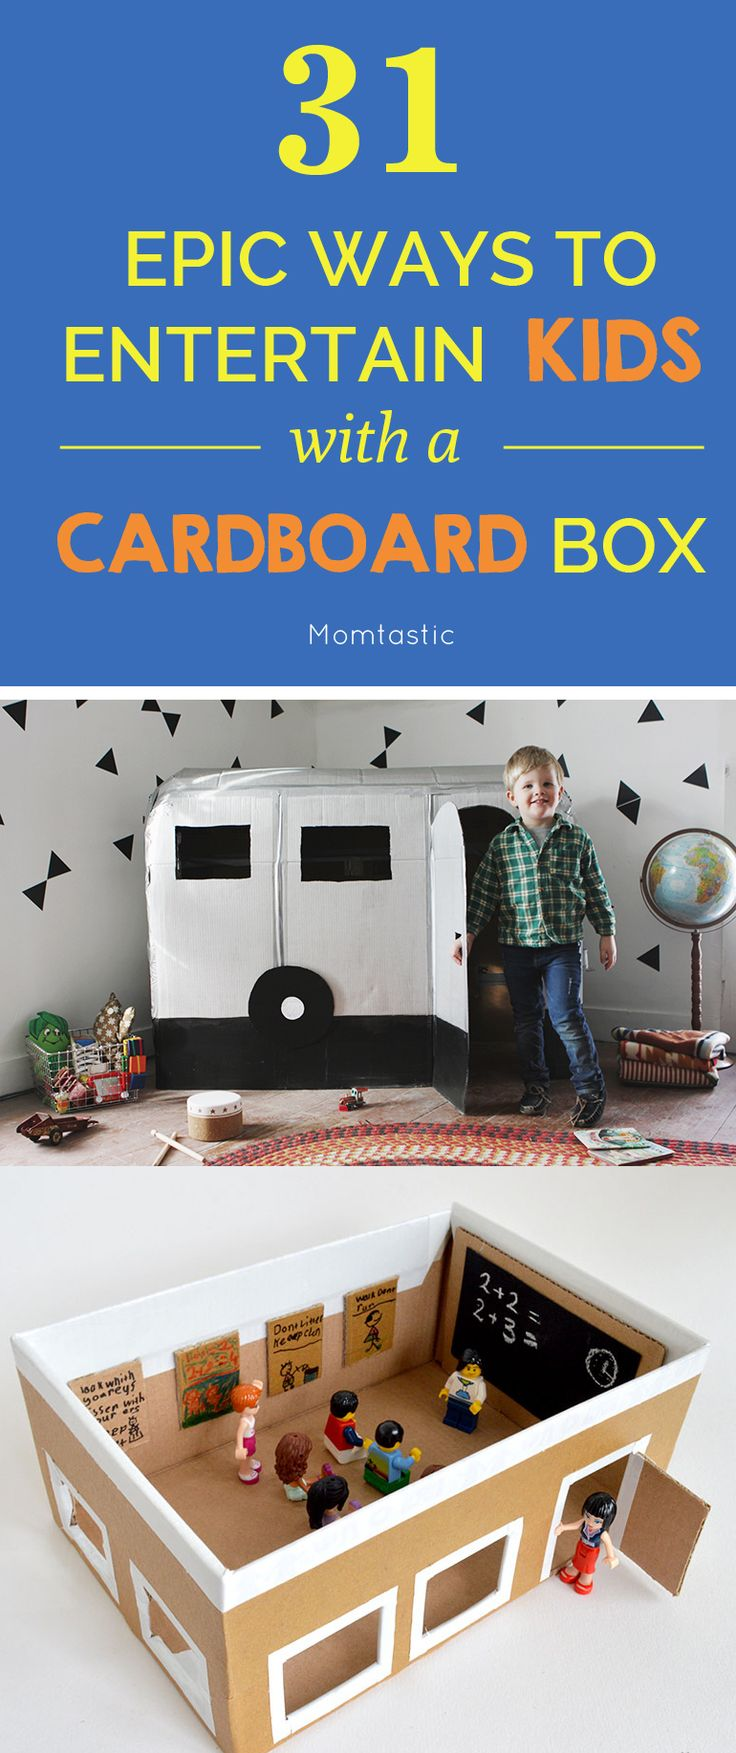 Epic ways to entertain your kids with a cardboard box